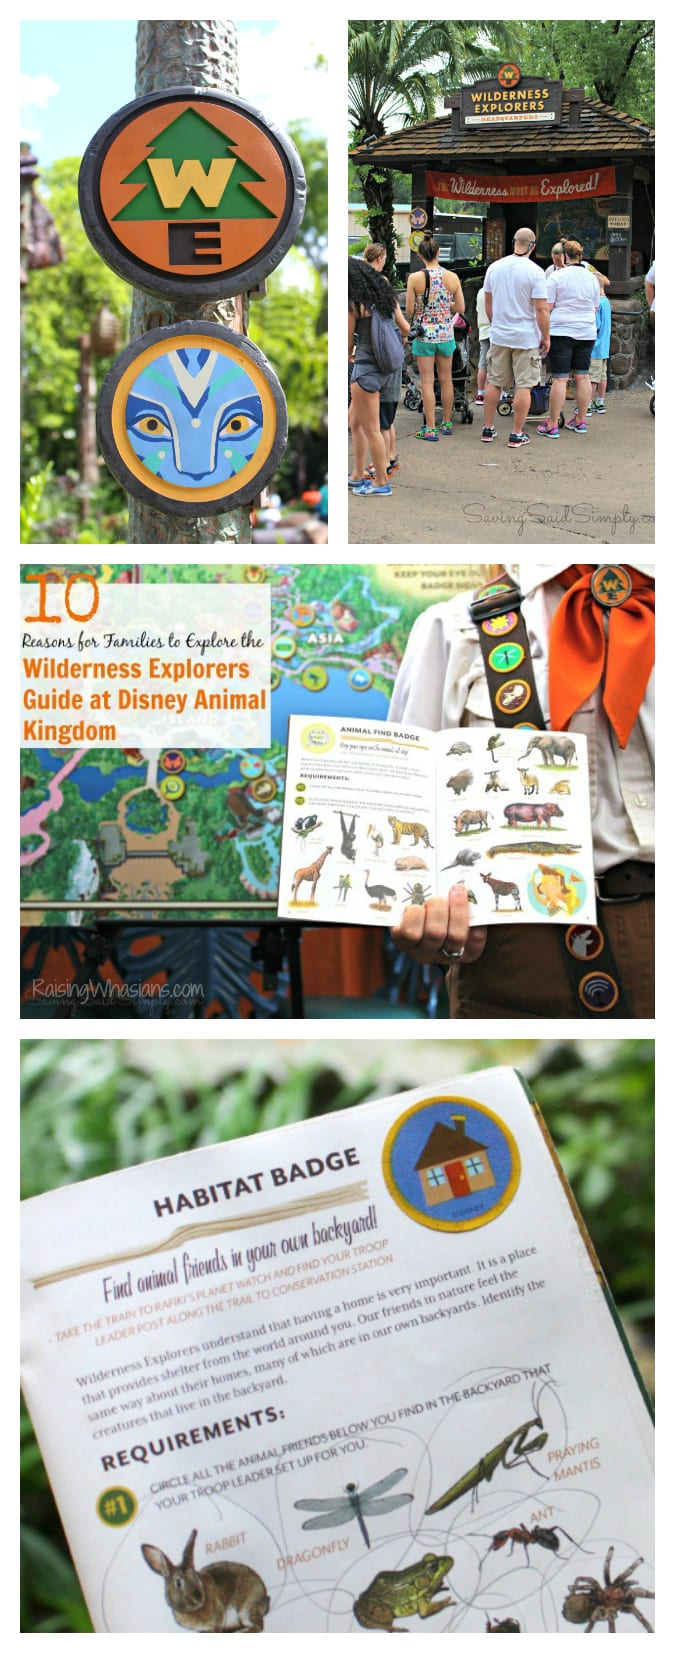 Wilderness explorers guide tips pinterest